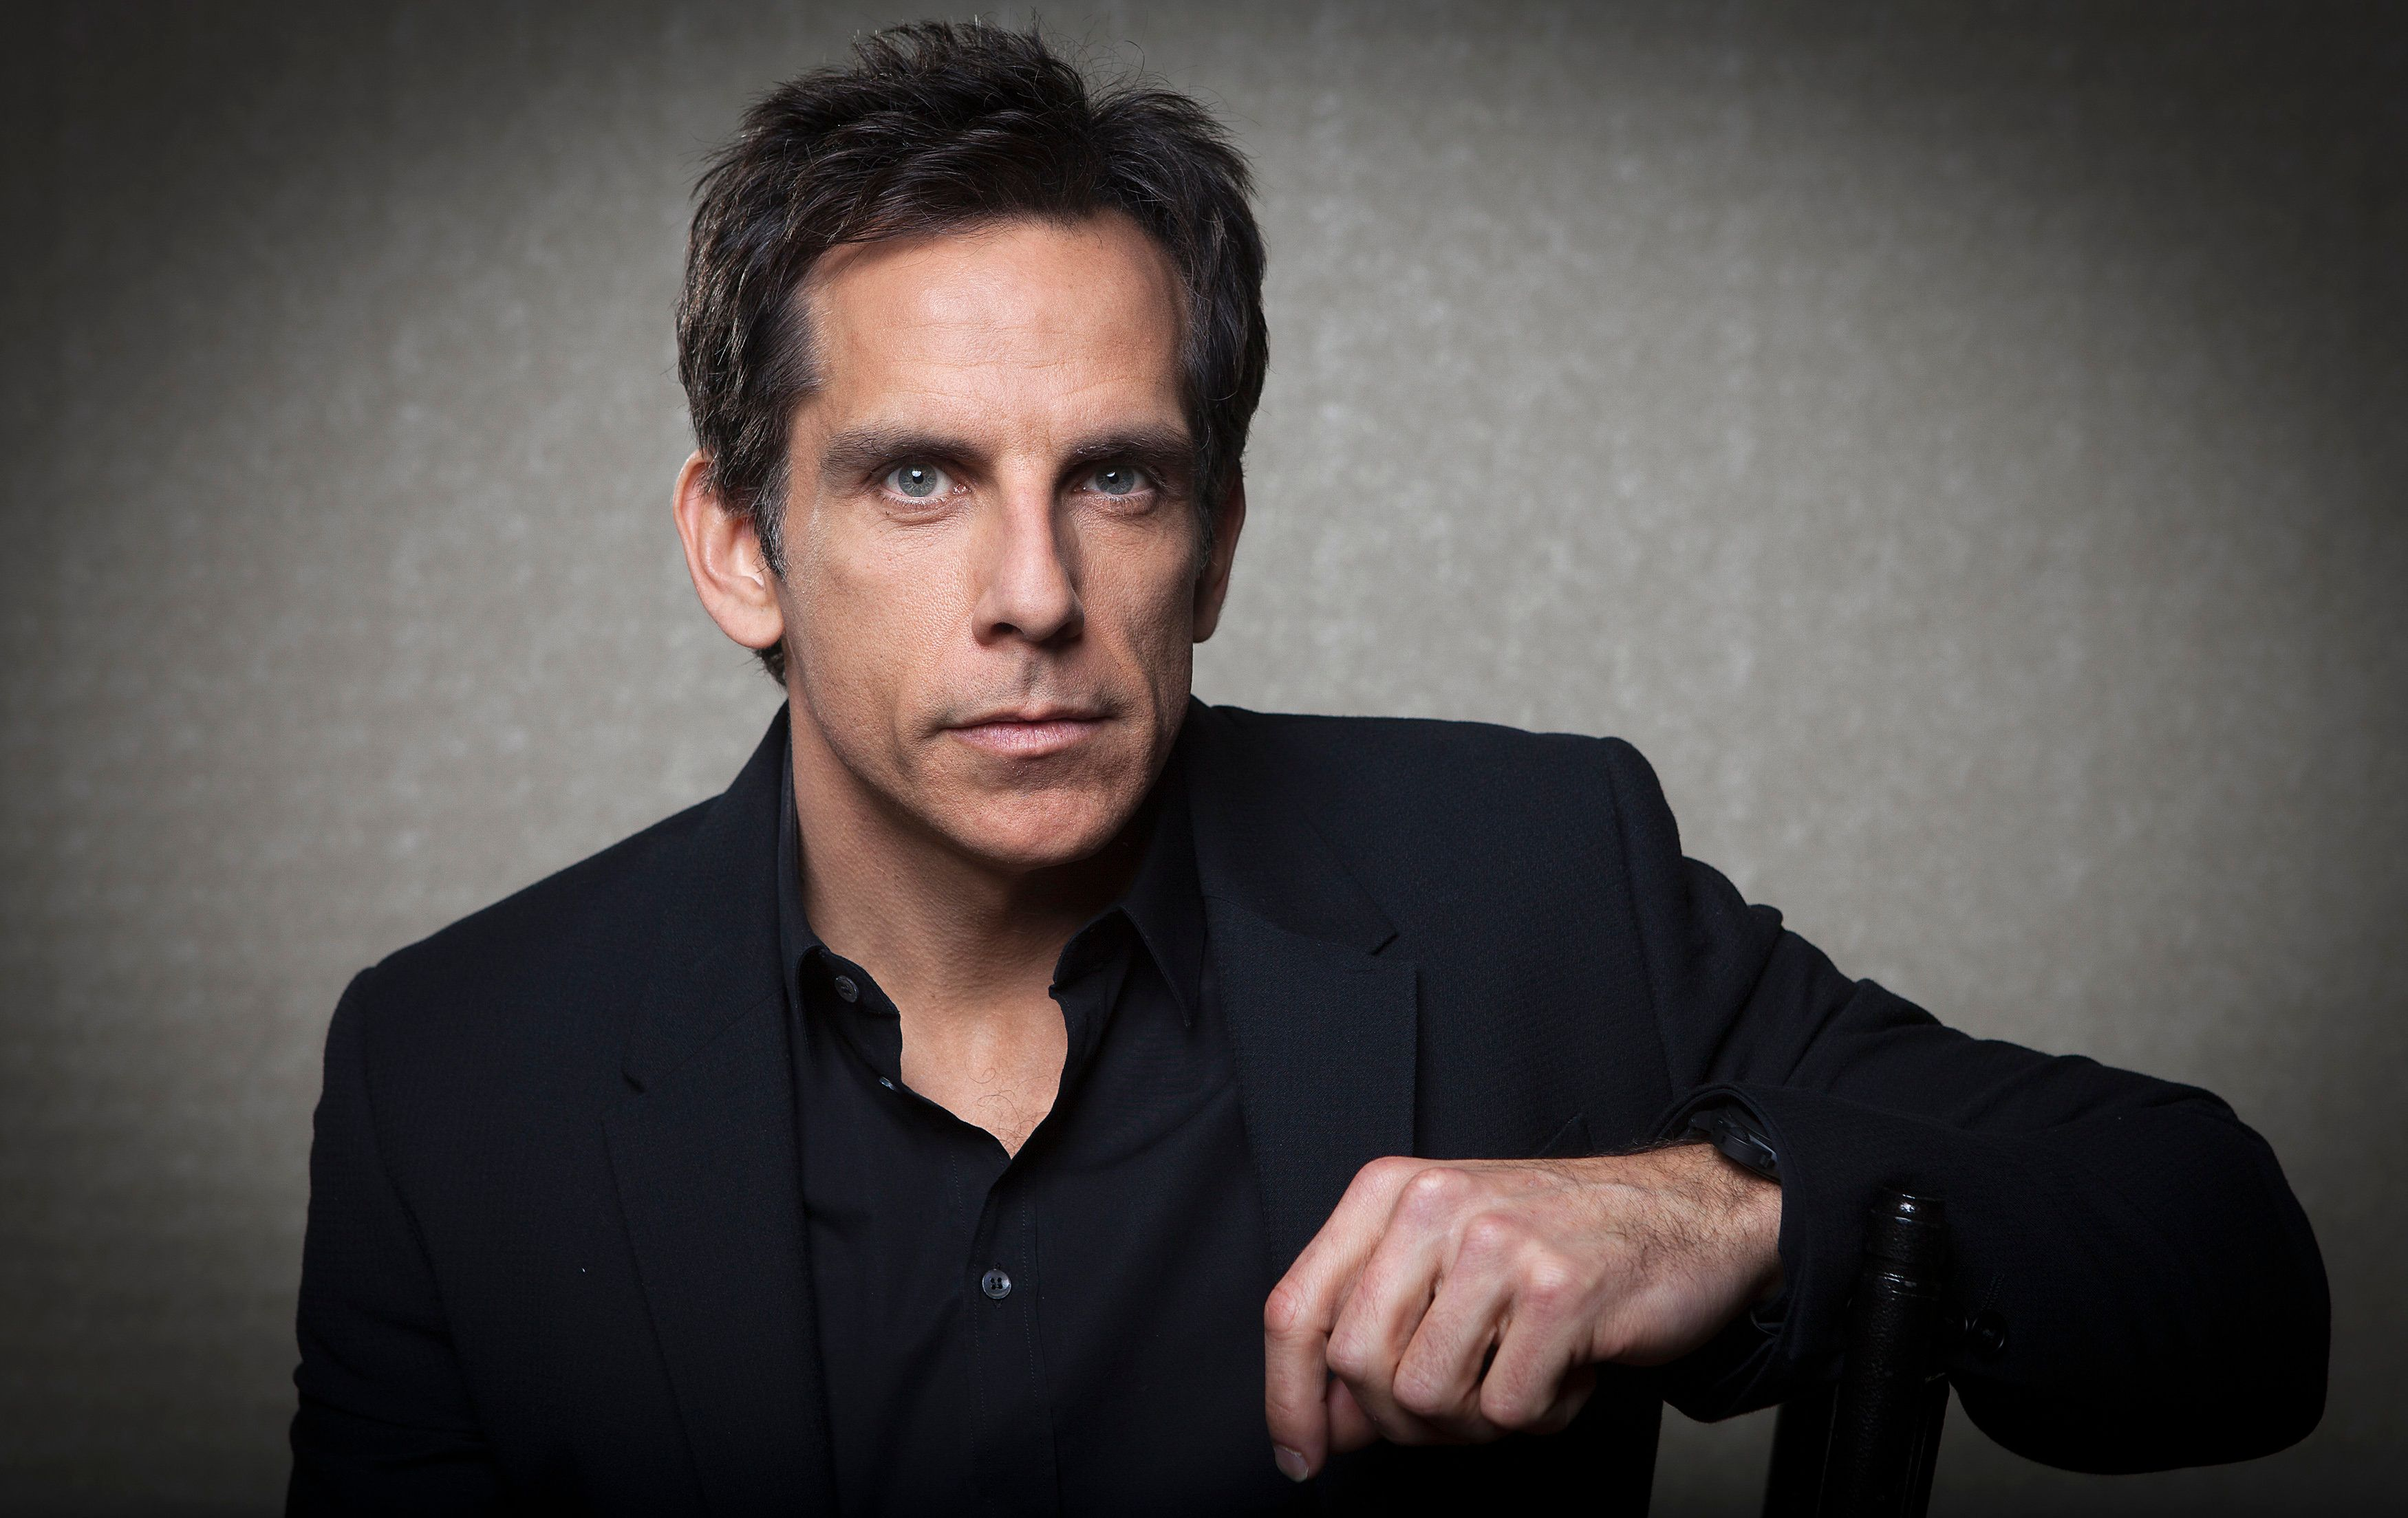 Actor Ben Stiller admits that his case is just one anecdote. Here's why you should take the totality of medical evidence into consideration.